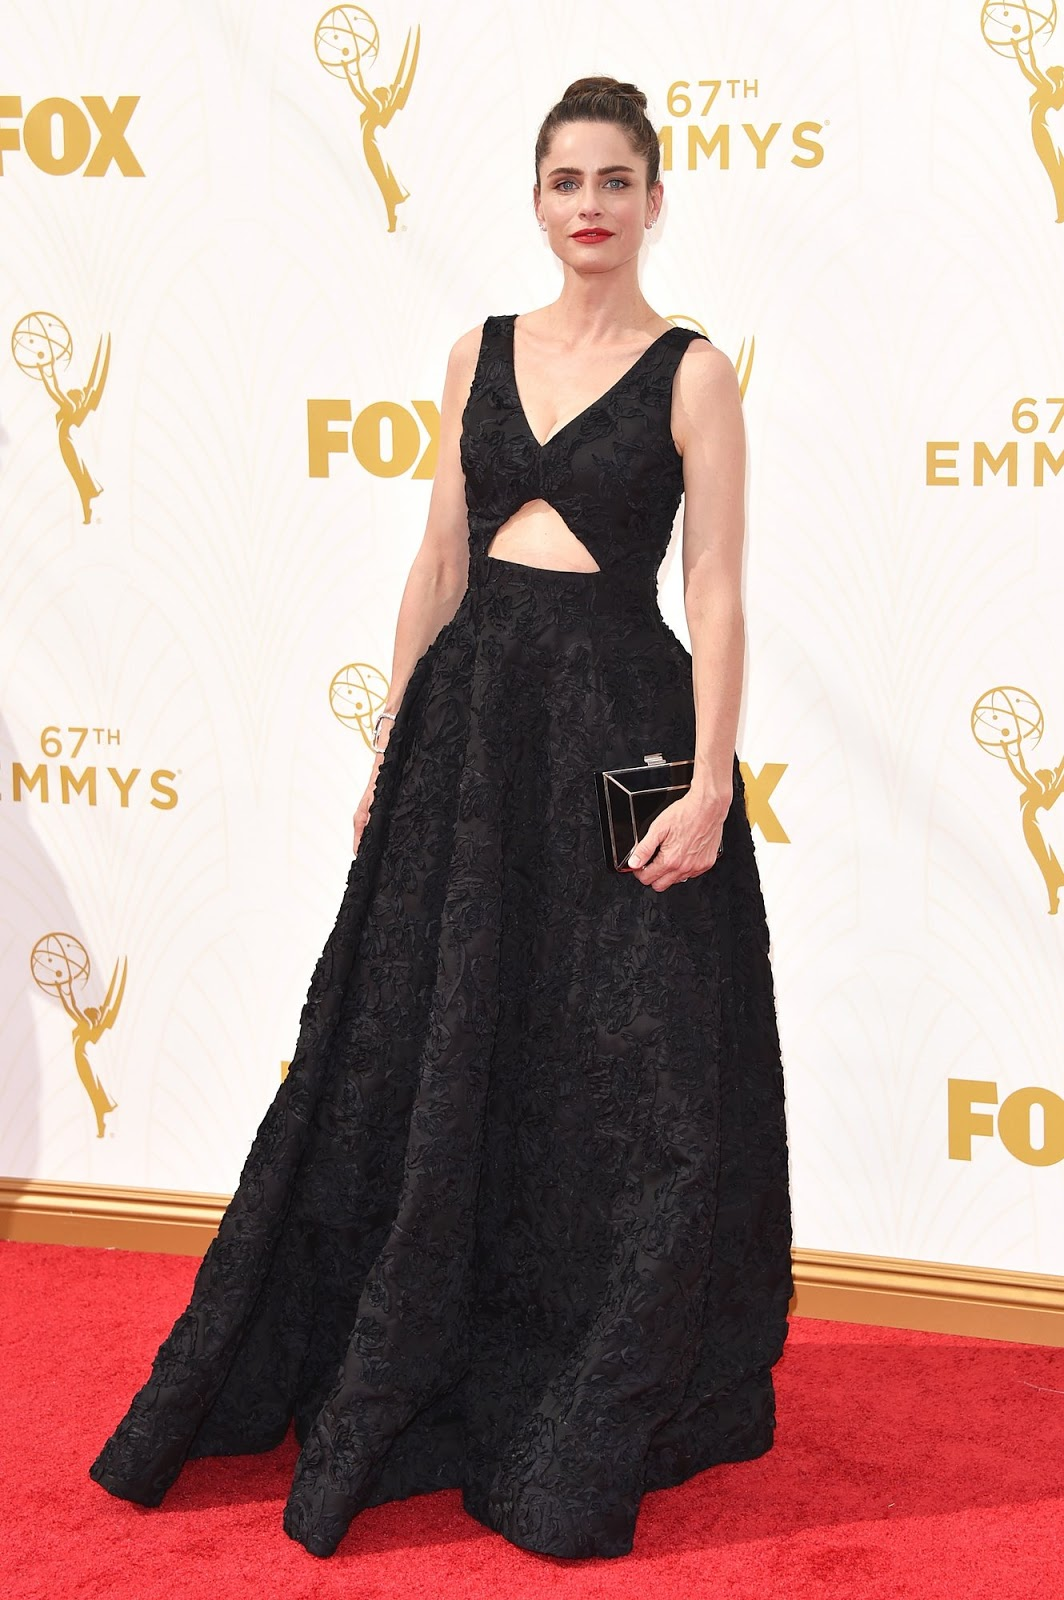 WHO WORE WHAT?.....Emmy Awards 2015: Trend Alert! Black is Back ...